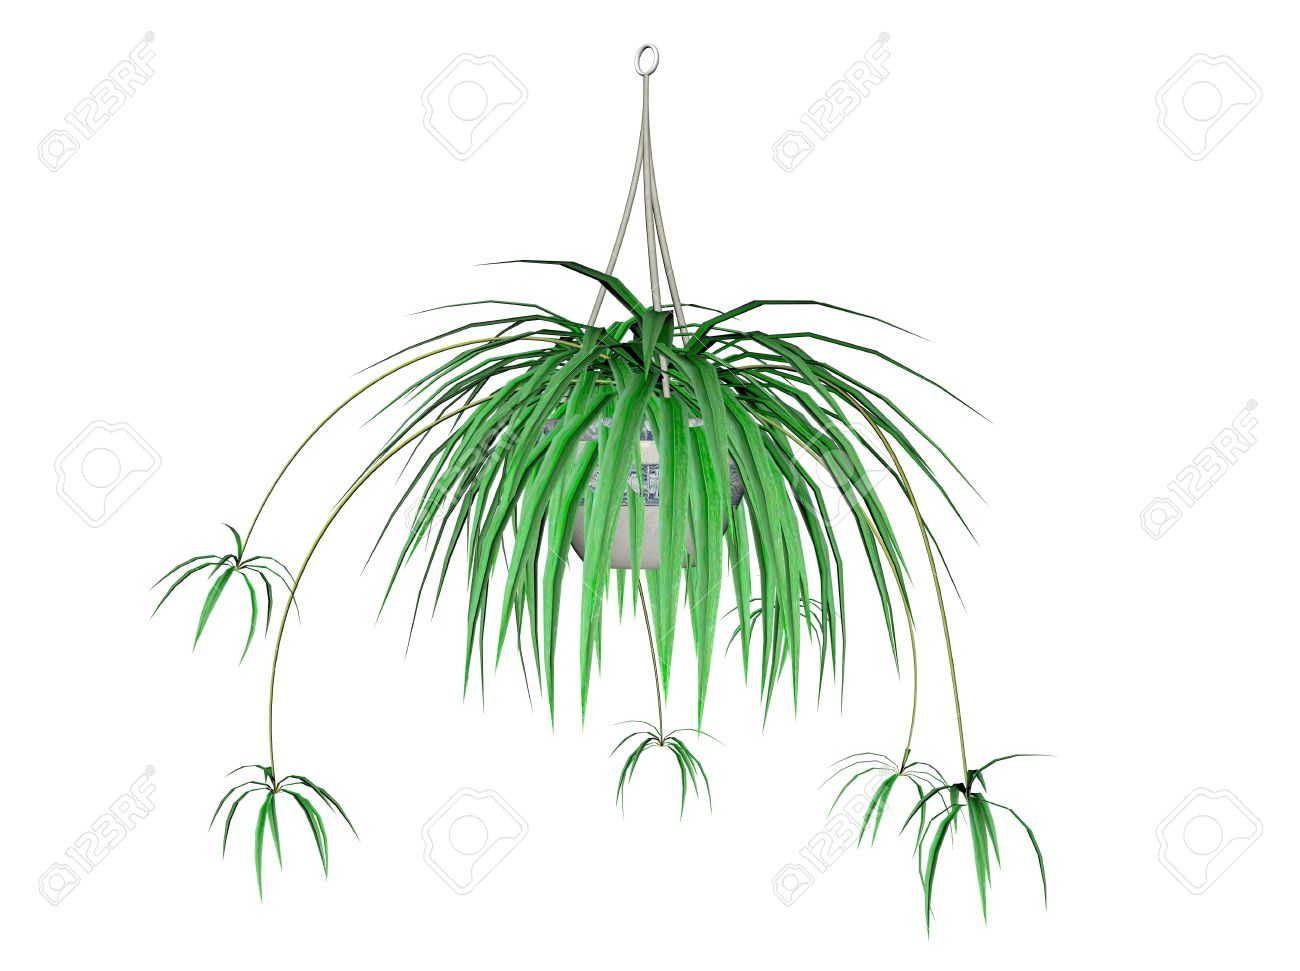 Illustration Of A Spider Plant, A Hanging Plant Stock Photo.